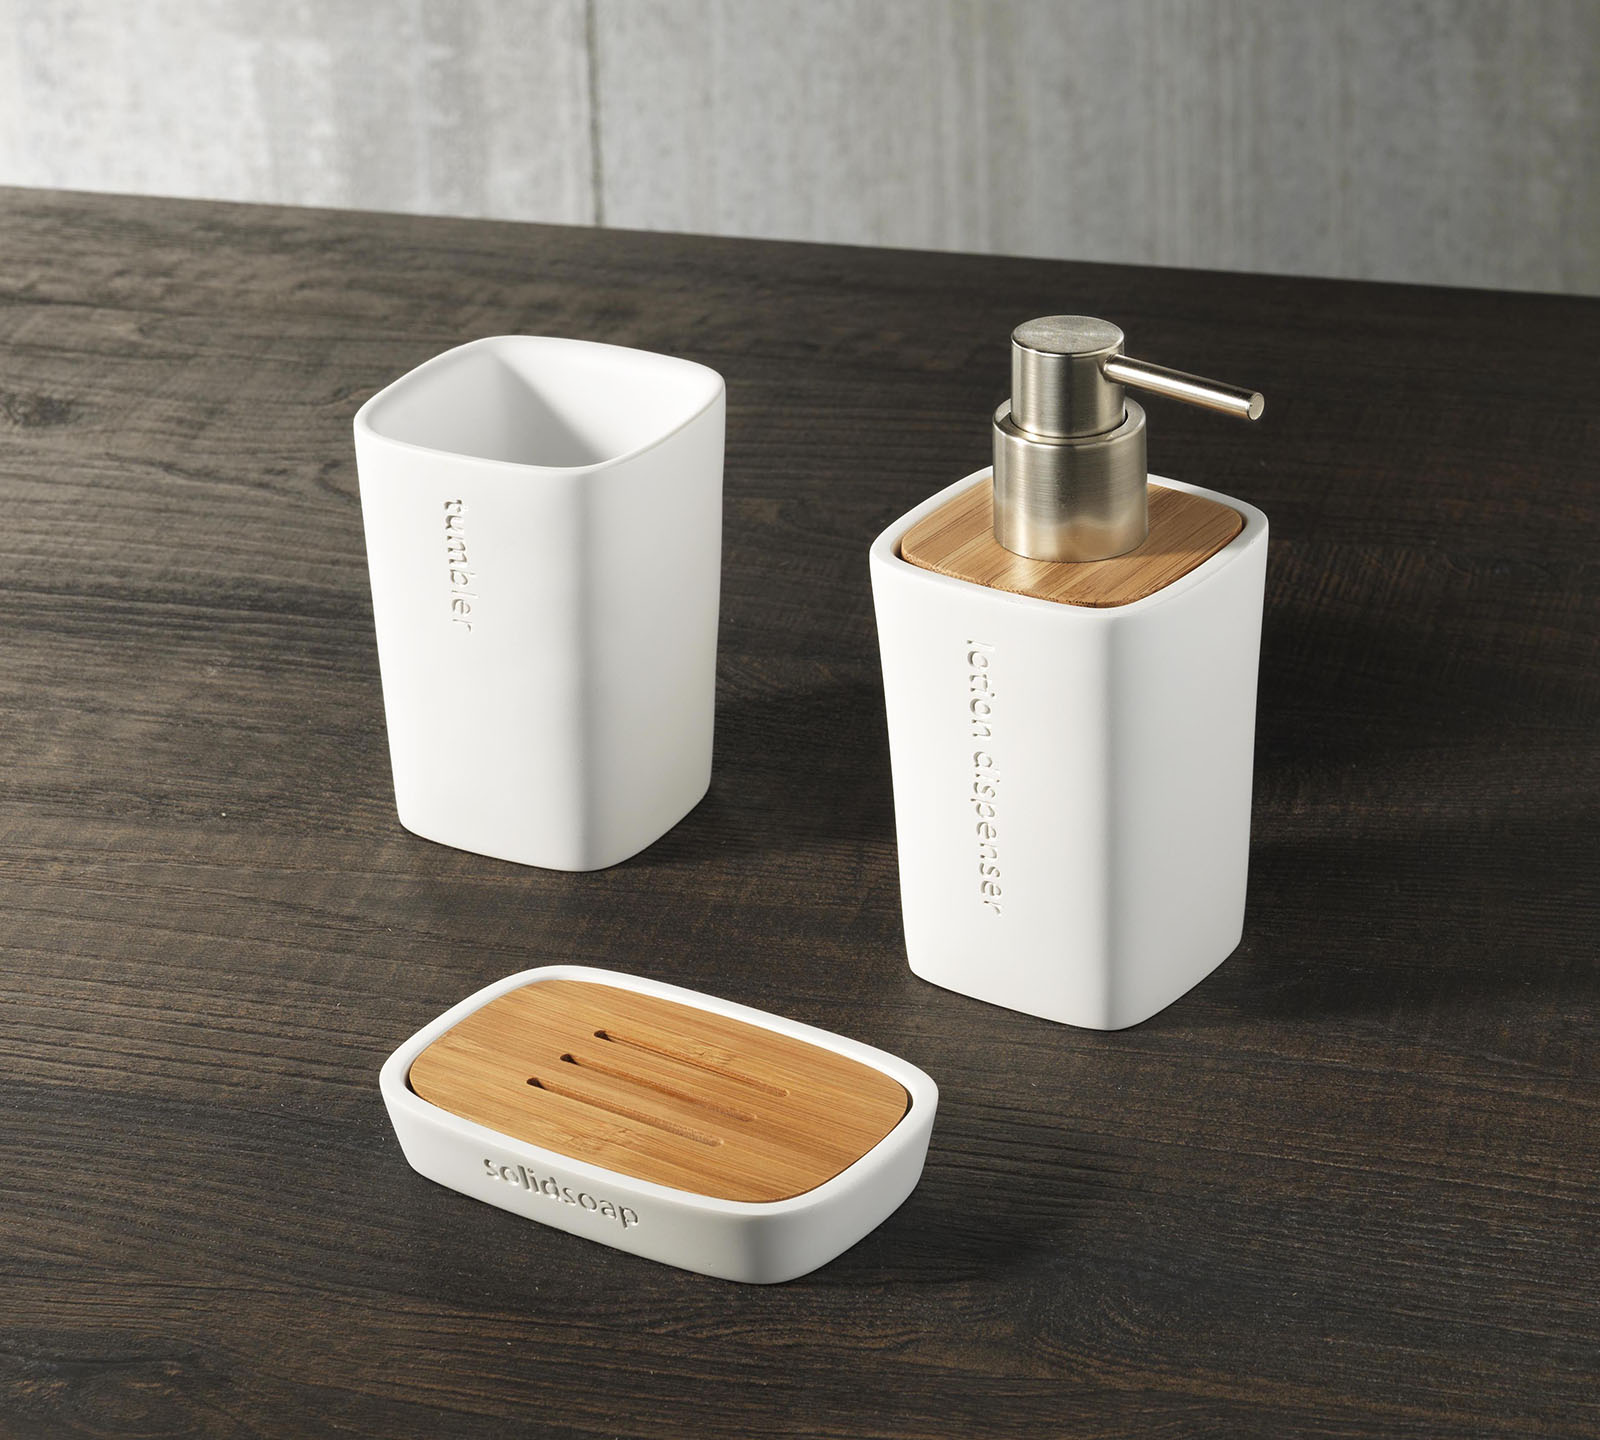 Accessori Bagno Dispenser | Careercounseling